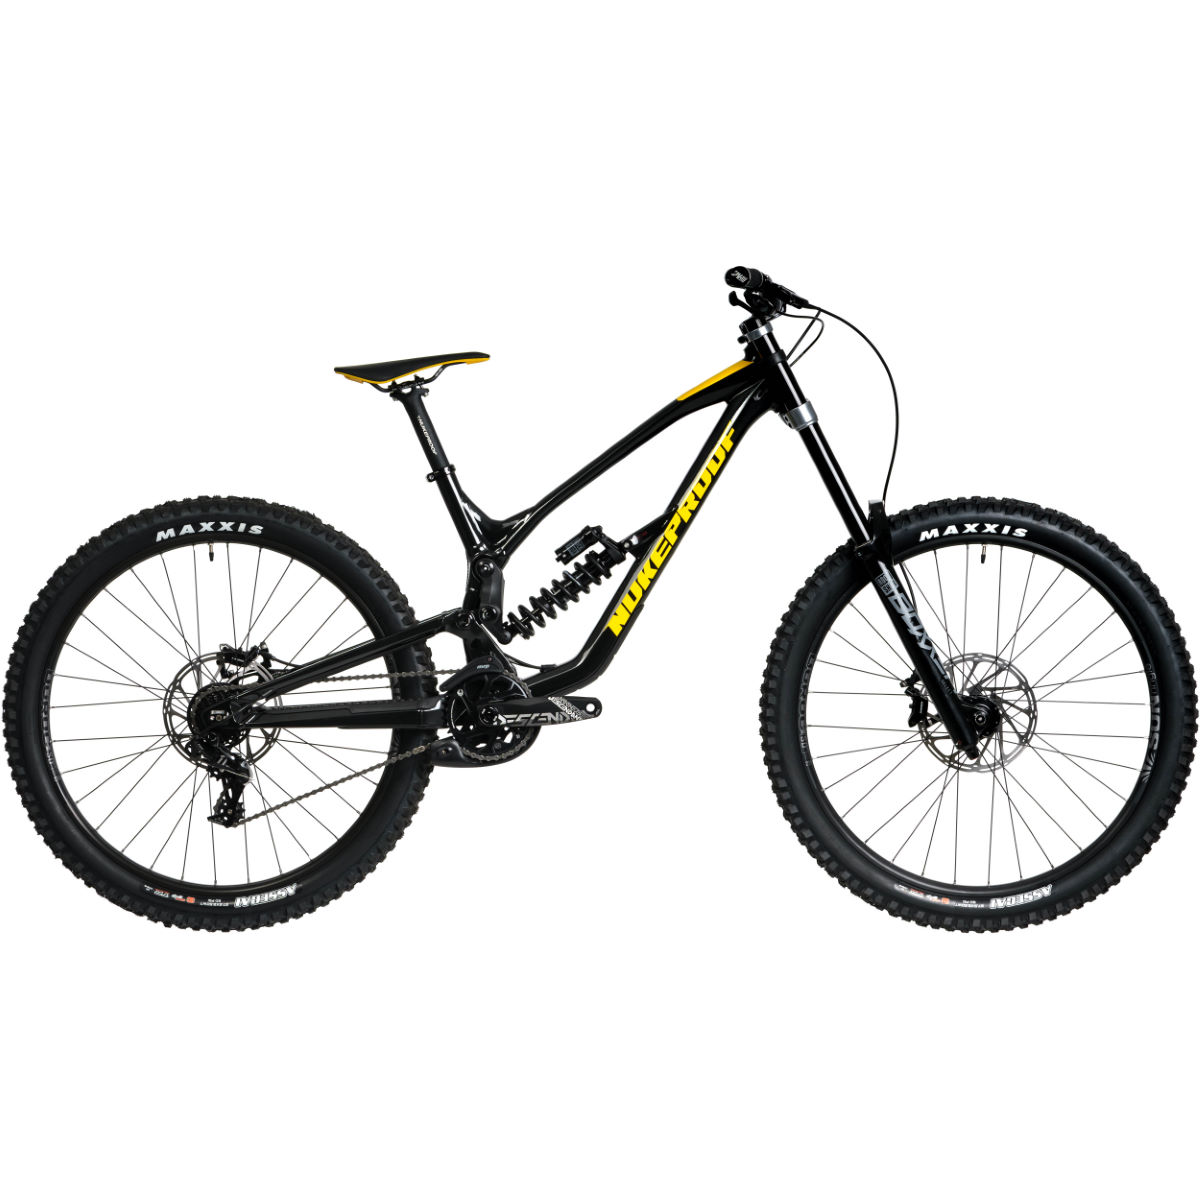 Nukeproof Nukeproof Dissent 275 Comp DH Bike (GX - 2020)   Full Suspension Mountain Bikes